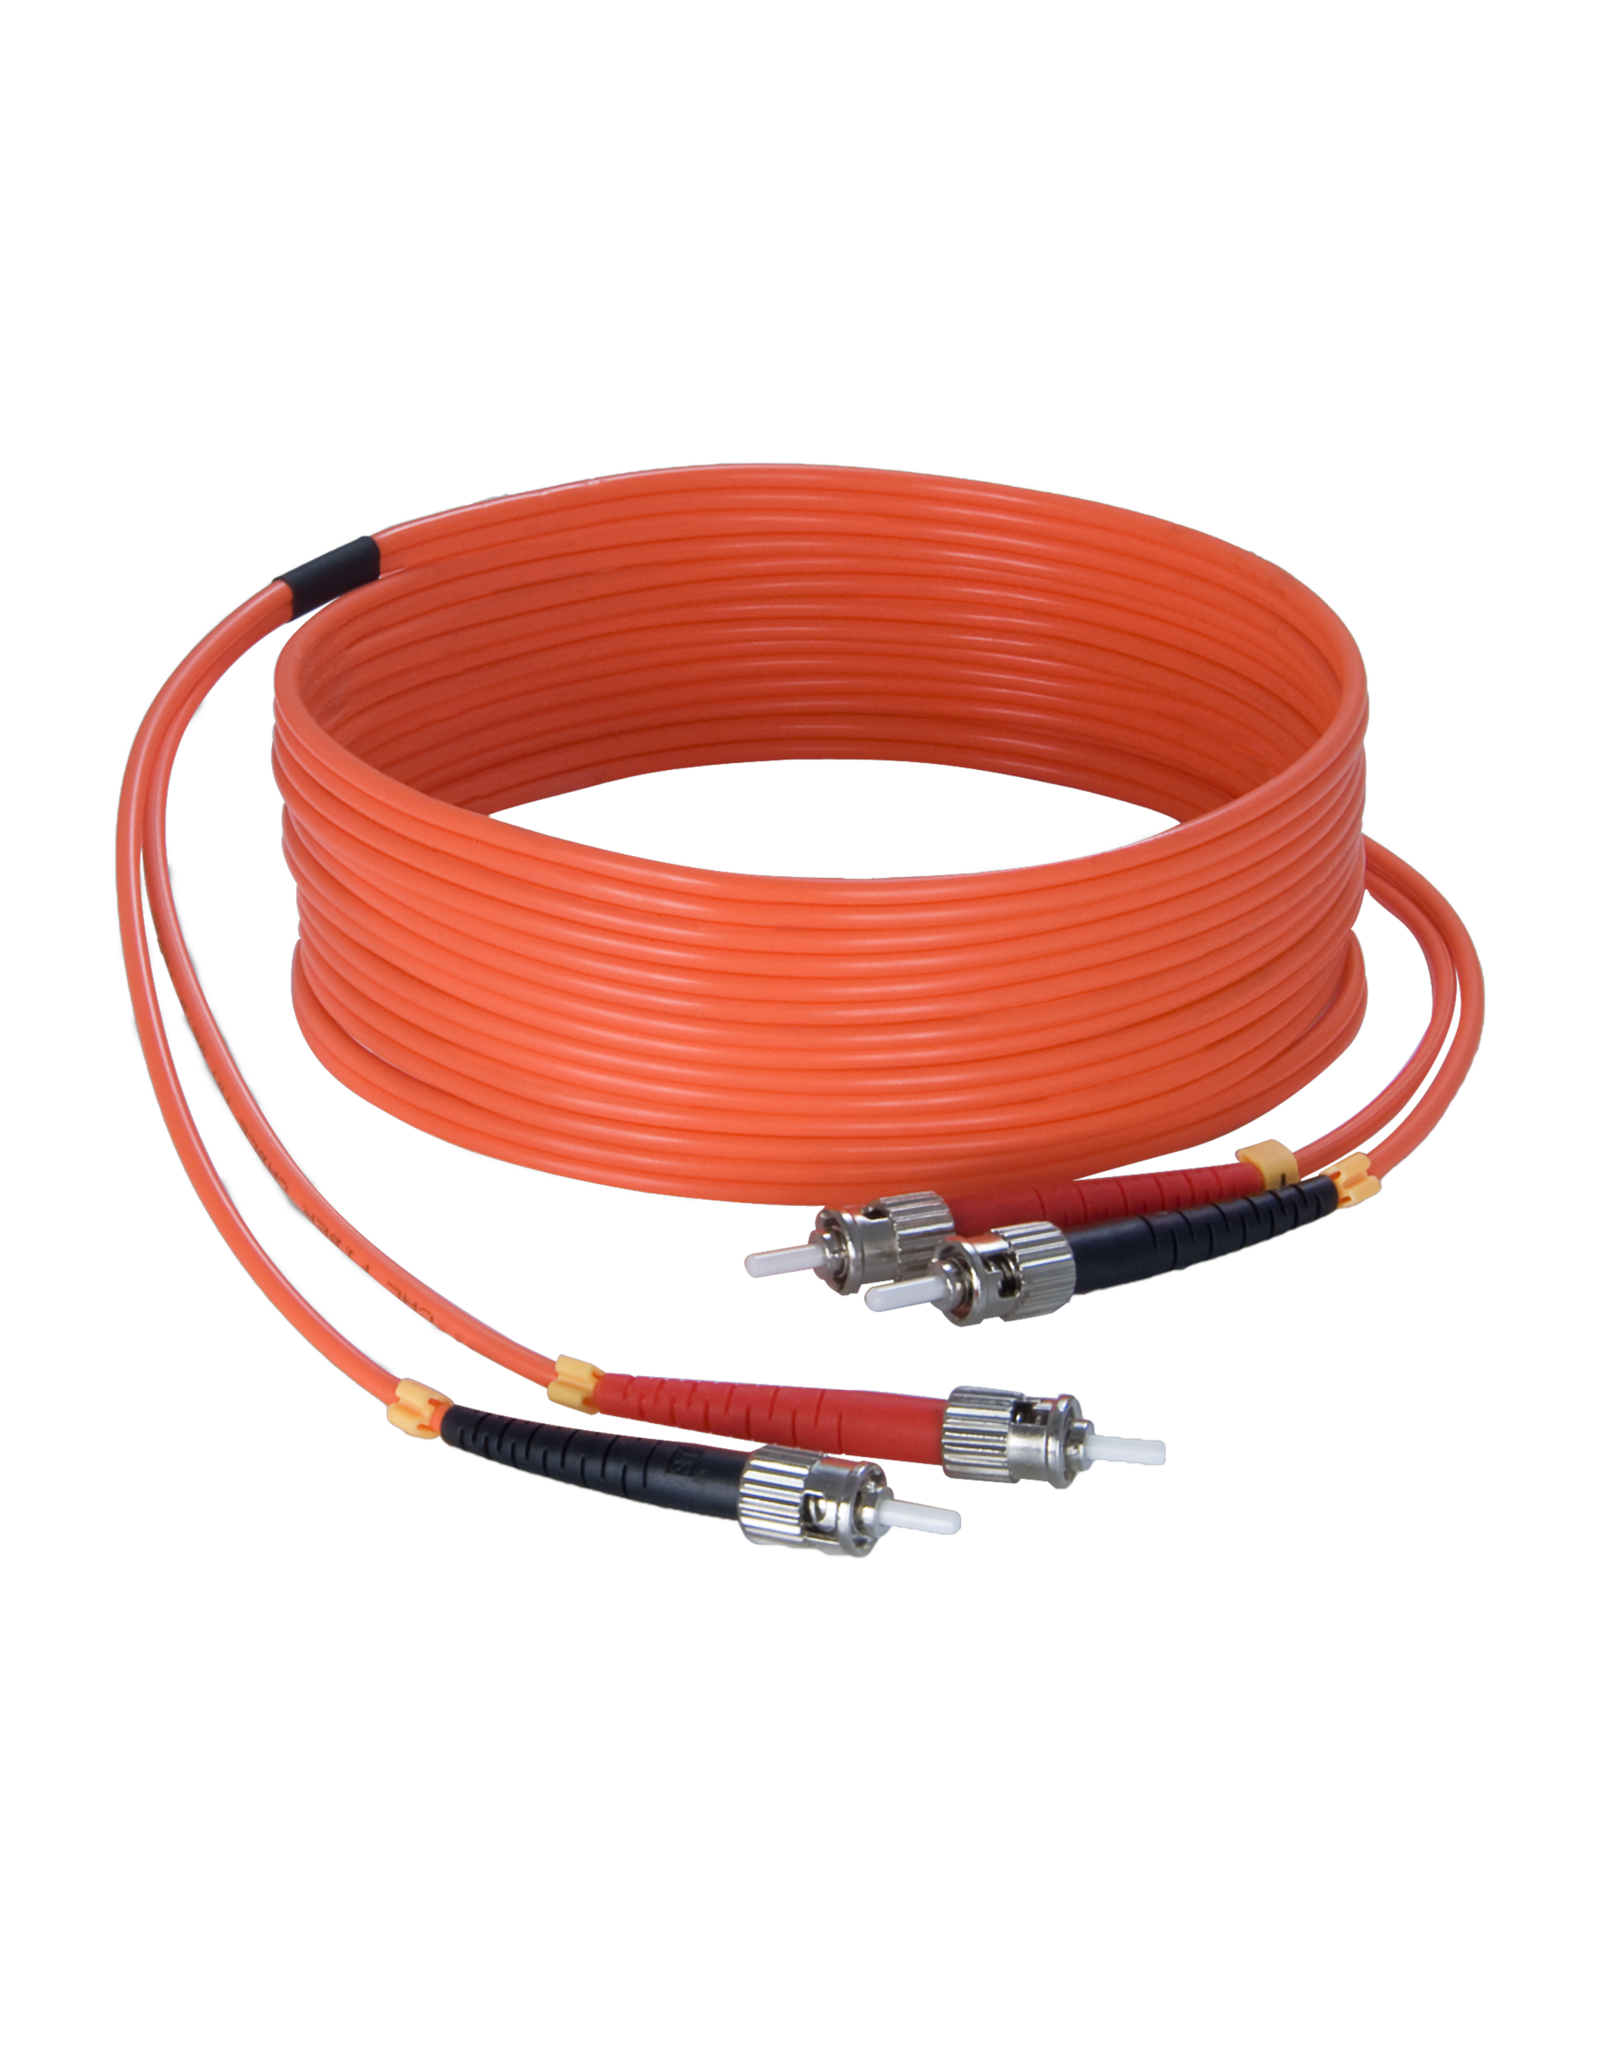 Audac Fiber optic cable - st/pc - st/pc - LSHF 30 meter